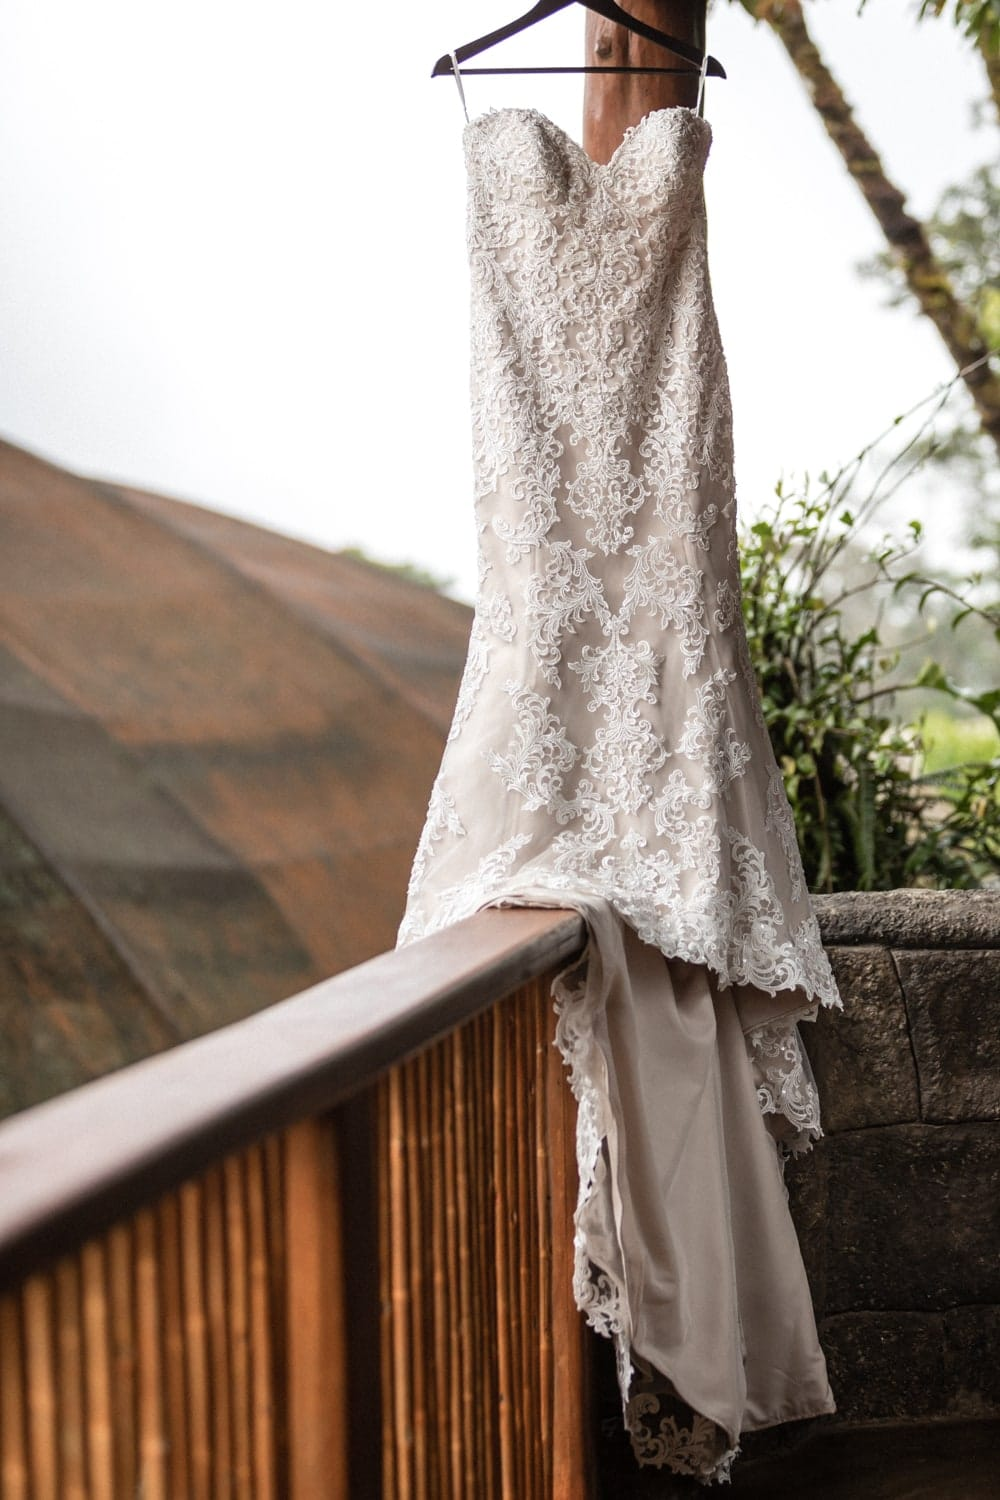 Gorgeous wedding dress on balcony at Peace Lodge in Costa Rica.